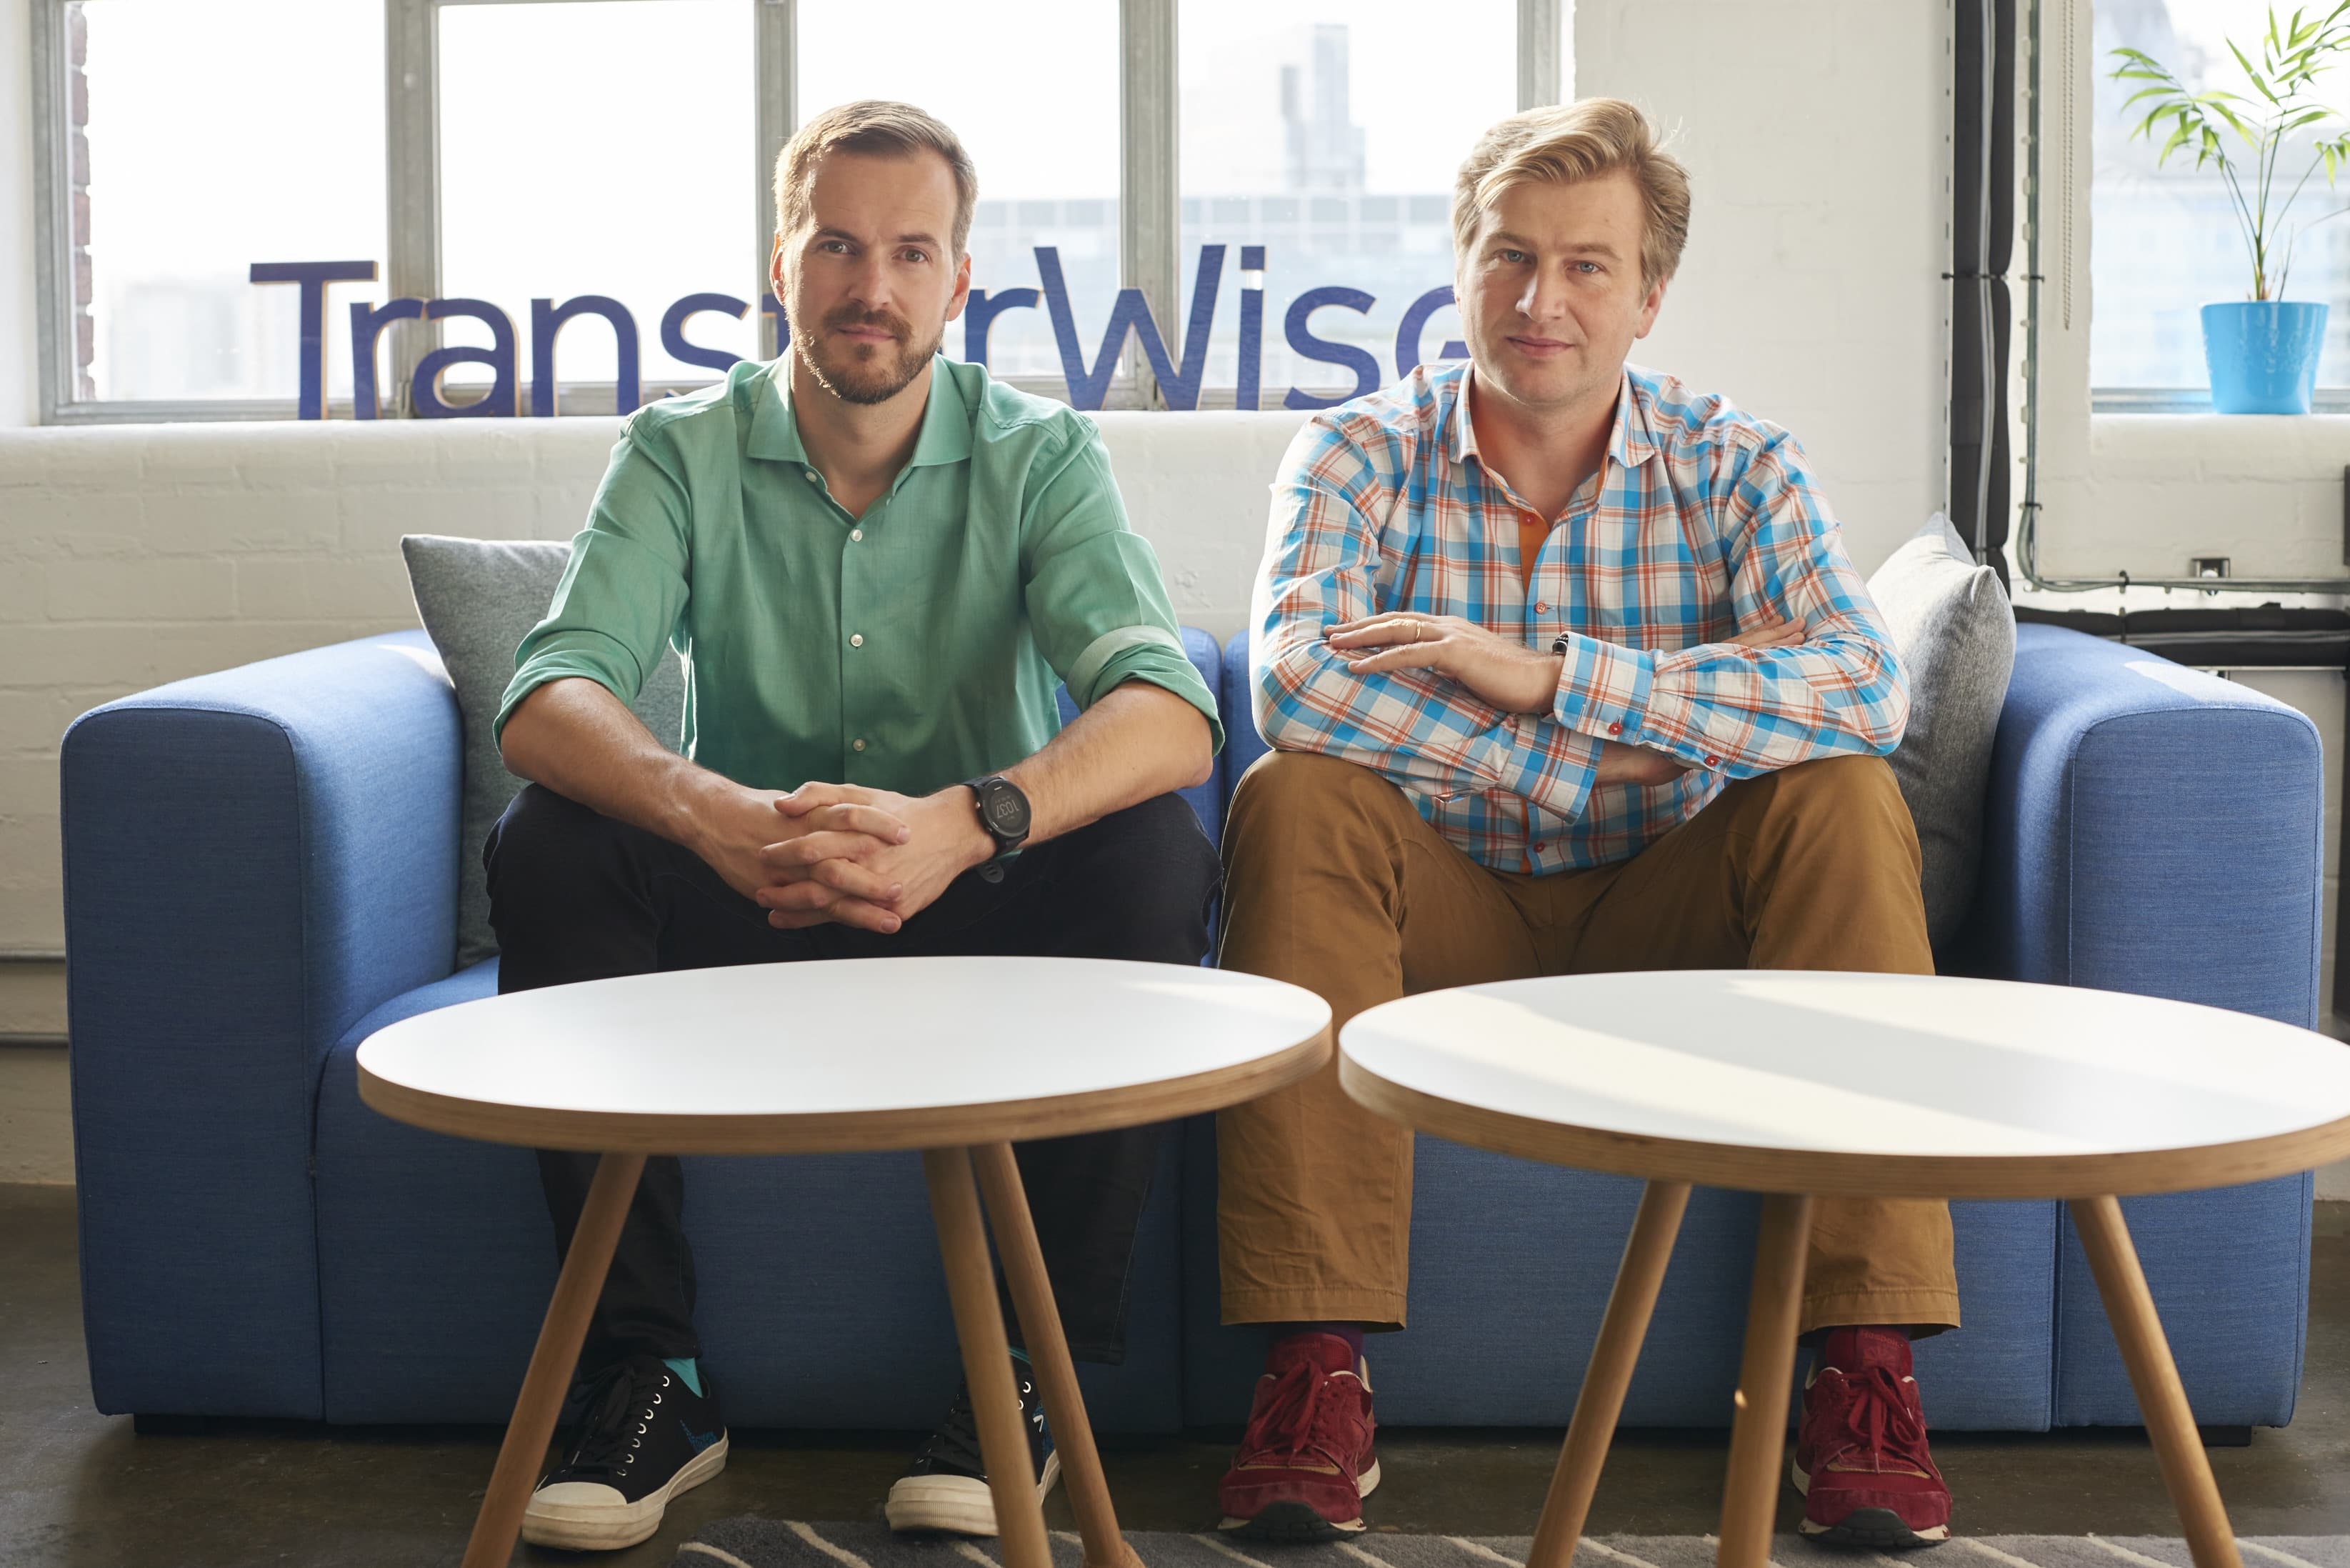 TransferWise, the $3.5 billion fintech firm backed by Peter Thiel, posts its third year of profit